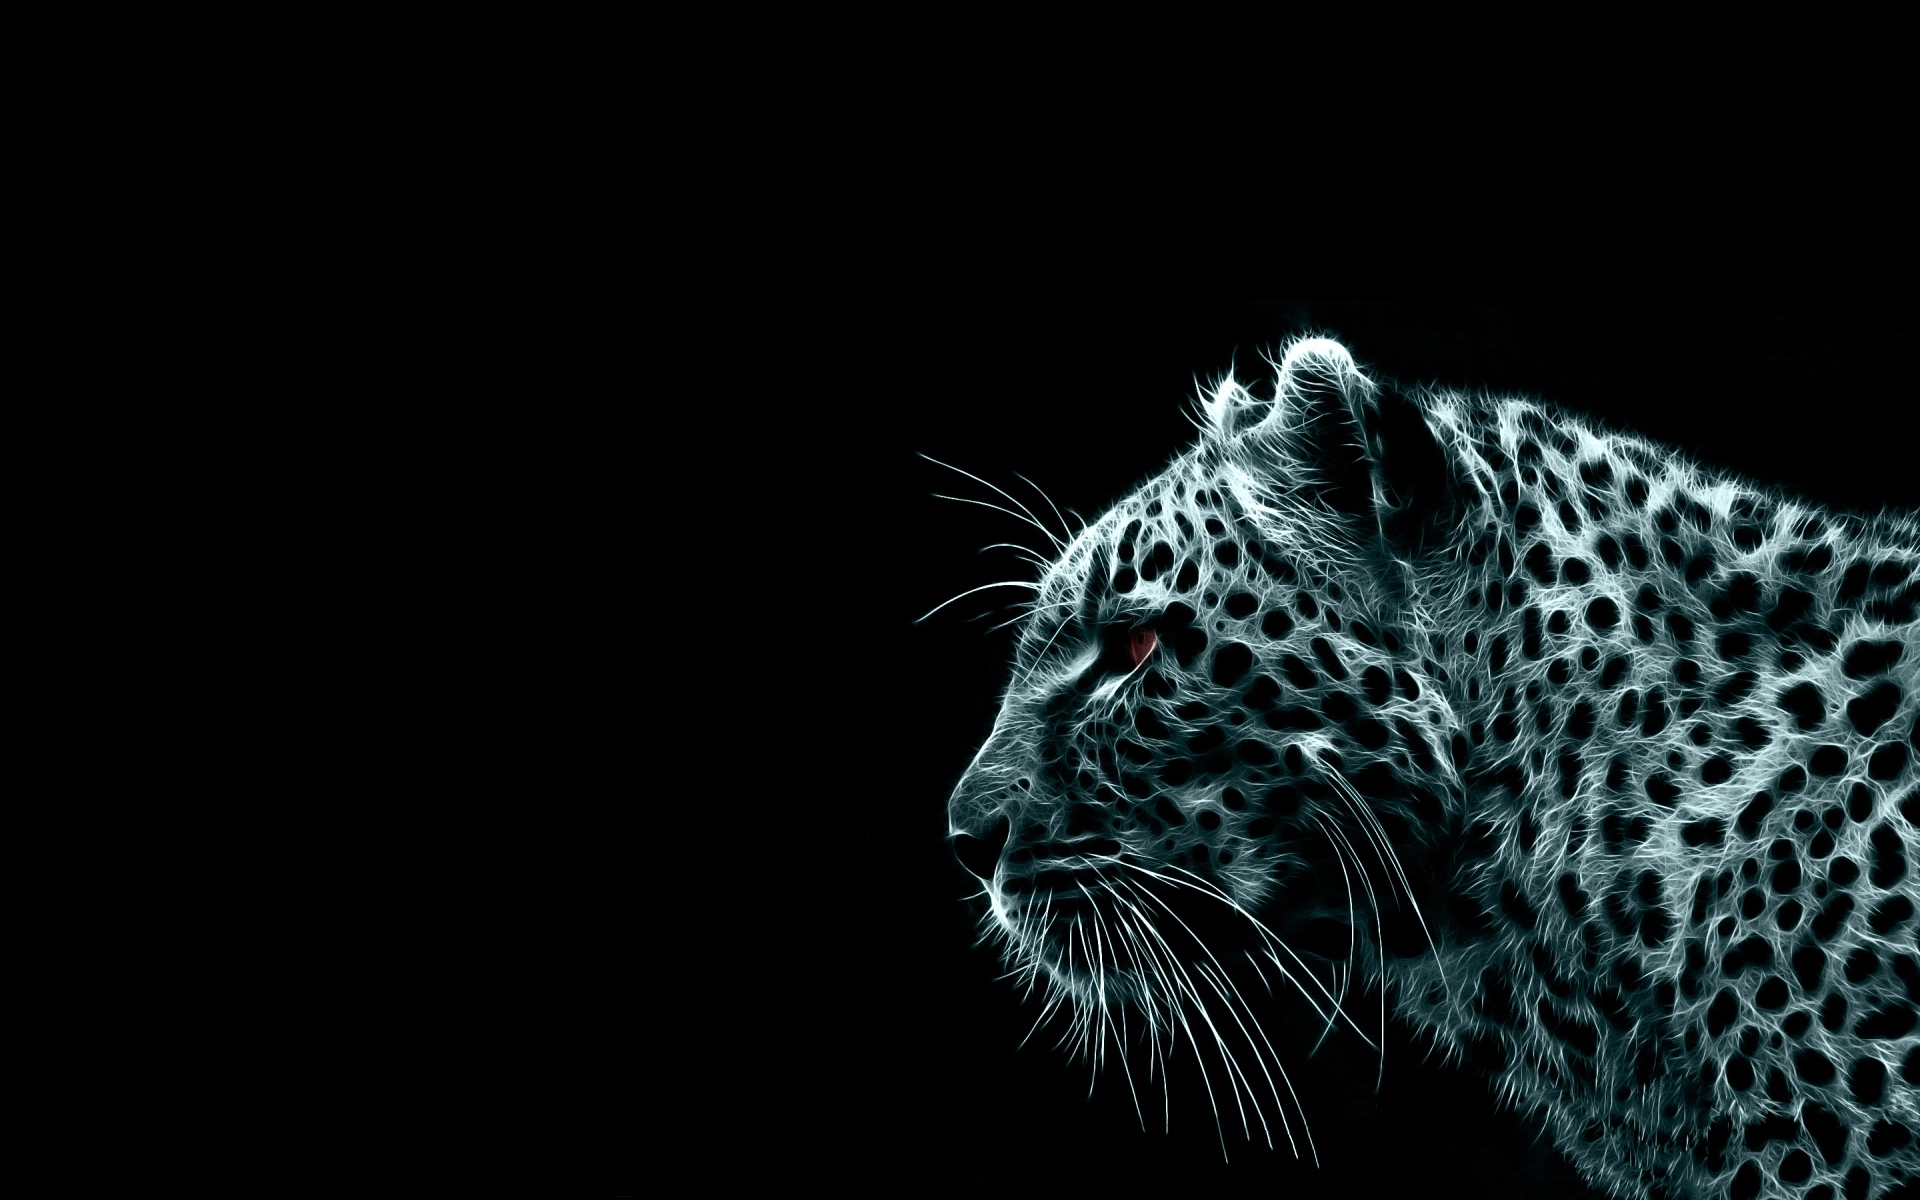 41926 download wallpaper Tigers, Pictures, Animals screensavers and pictures for free